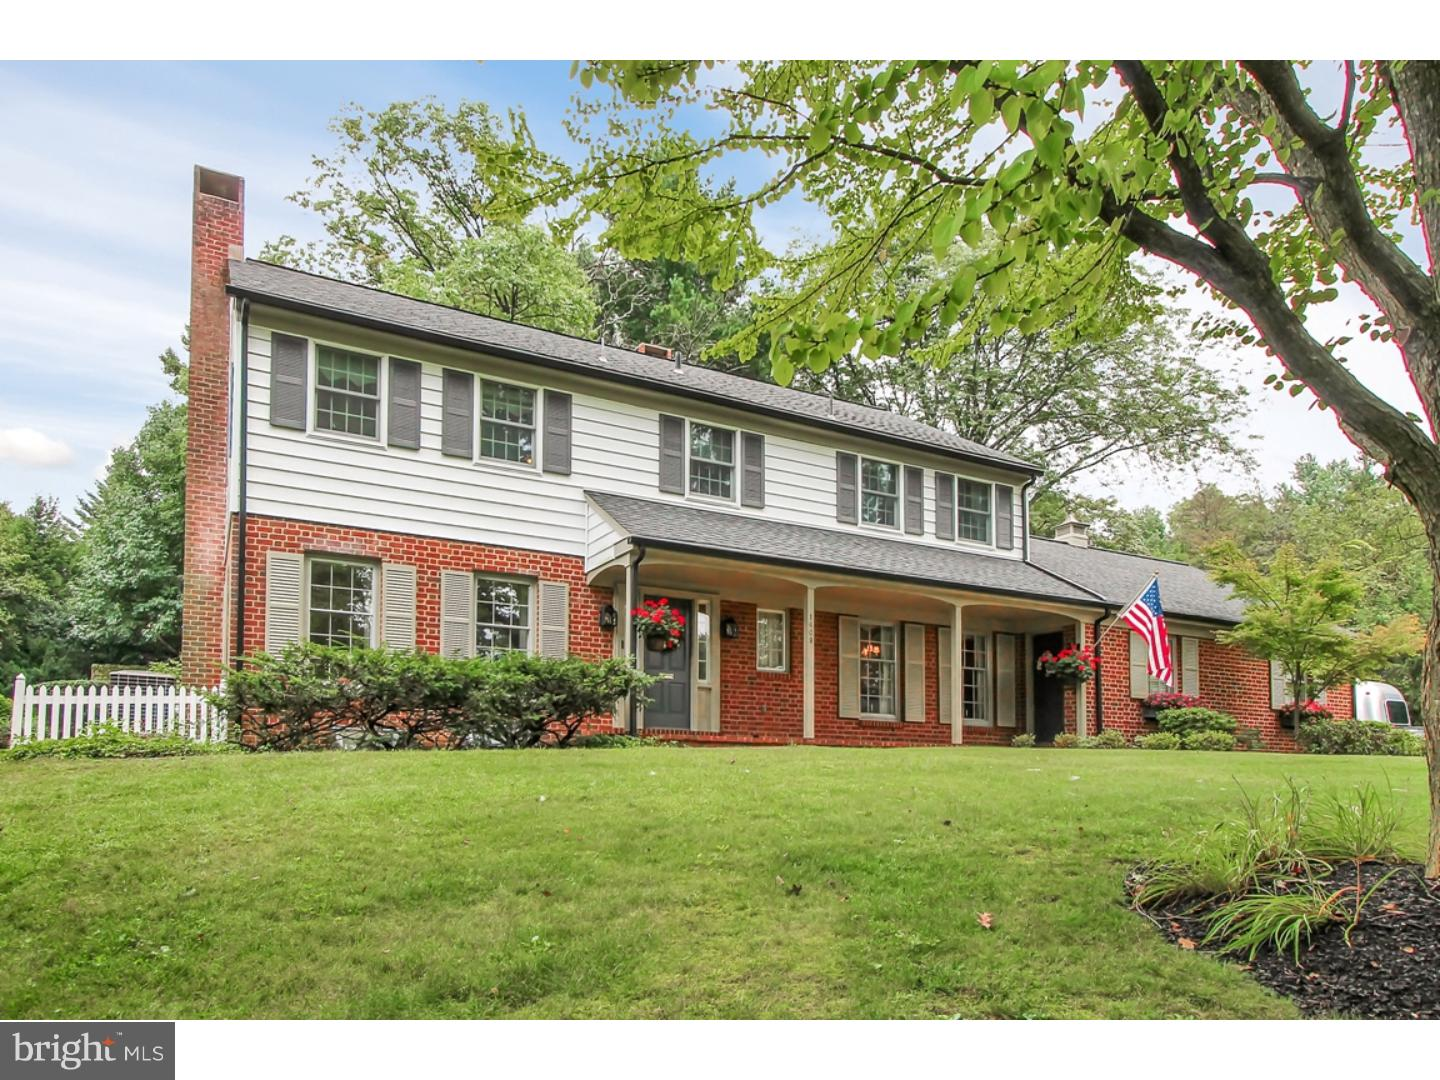 1409 OLD MILL ROAD, WYOMISSING, PA 19610